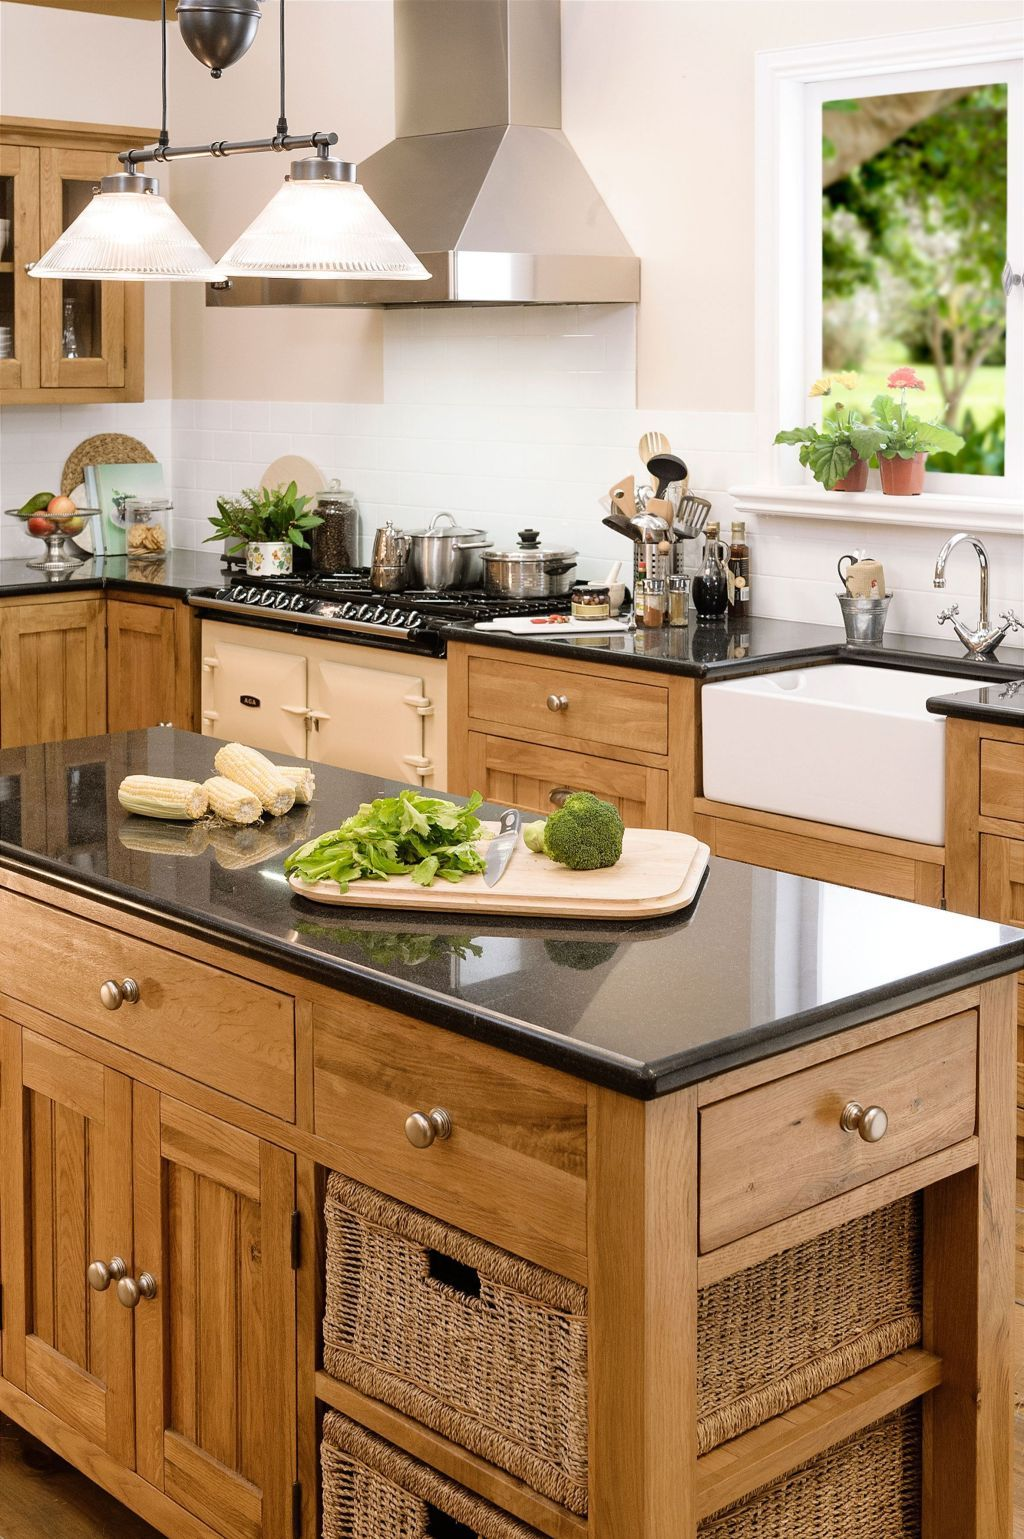 Charming Kitchen Cabinet Decorating 310 Maple Kitchen Cabinets Charming Kitchen Grey Kitchen Cabinets